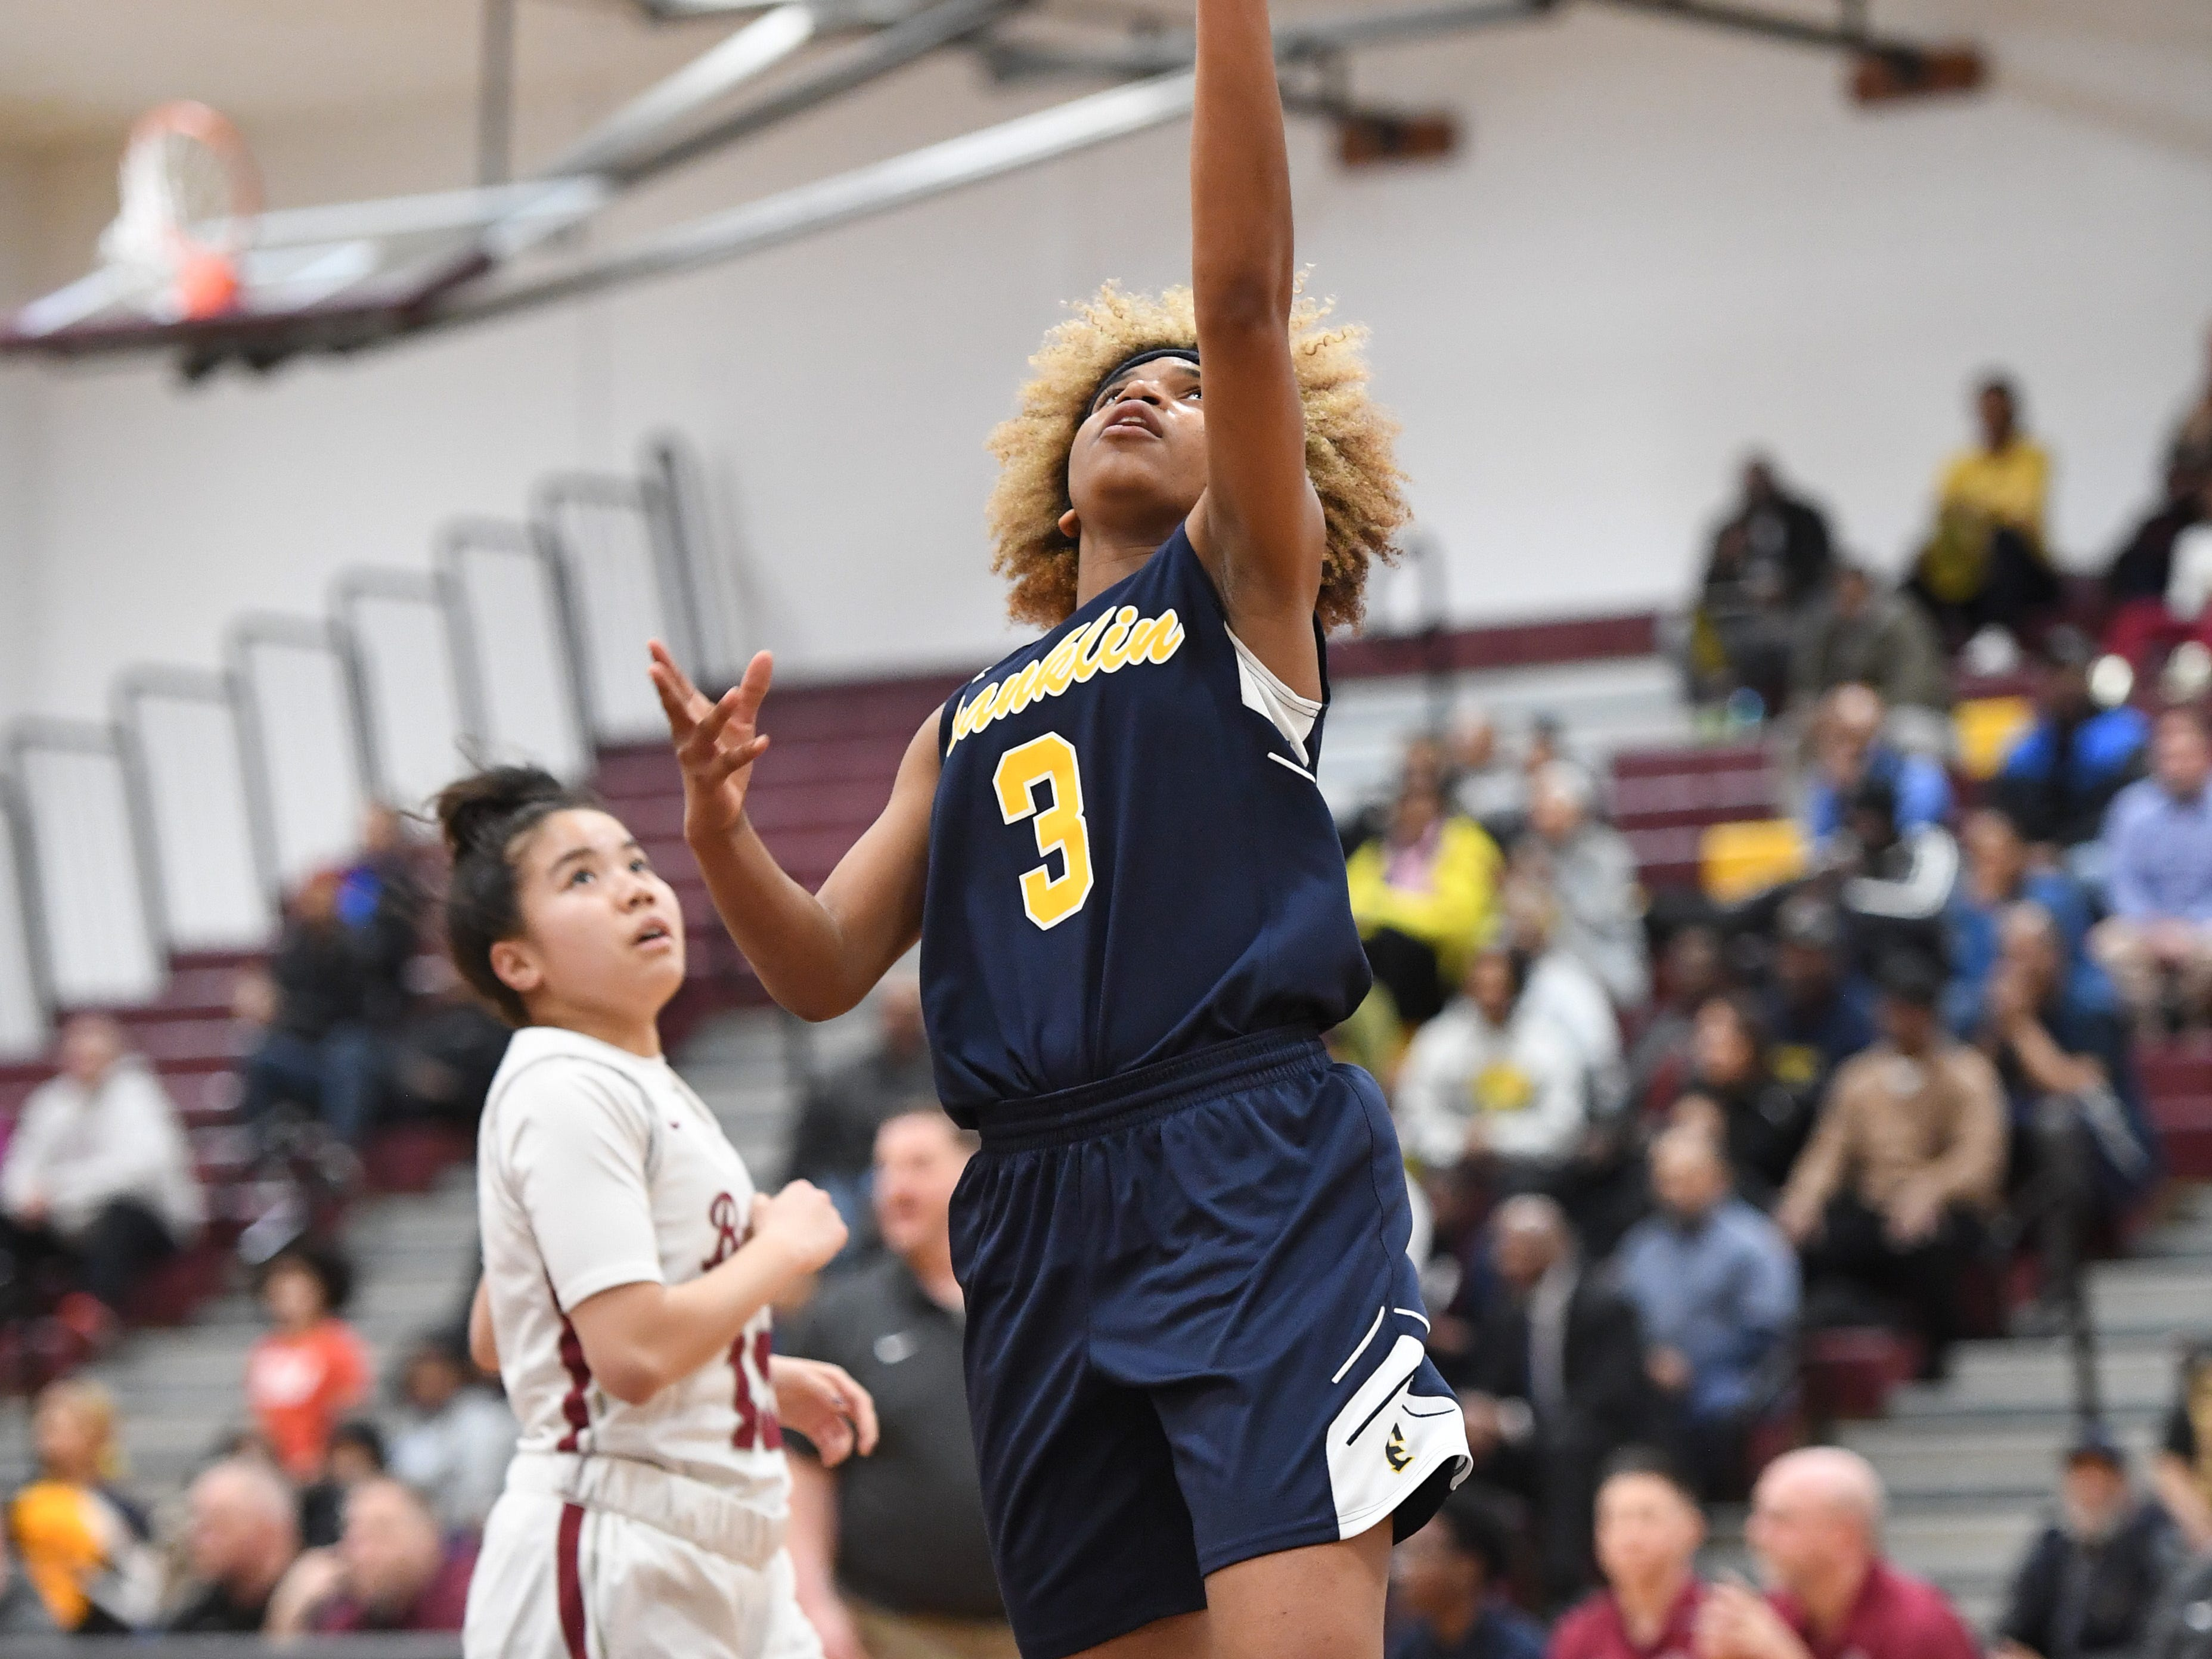 Franklin vs. Bloomfield in the girls basketball Group IV semifinal at Union High School on Thursday, March 7, 2019. F #3 Tiana Joy Jackson drives to the basket.